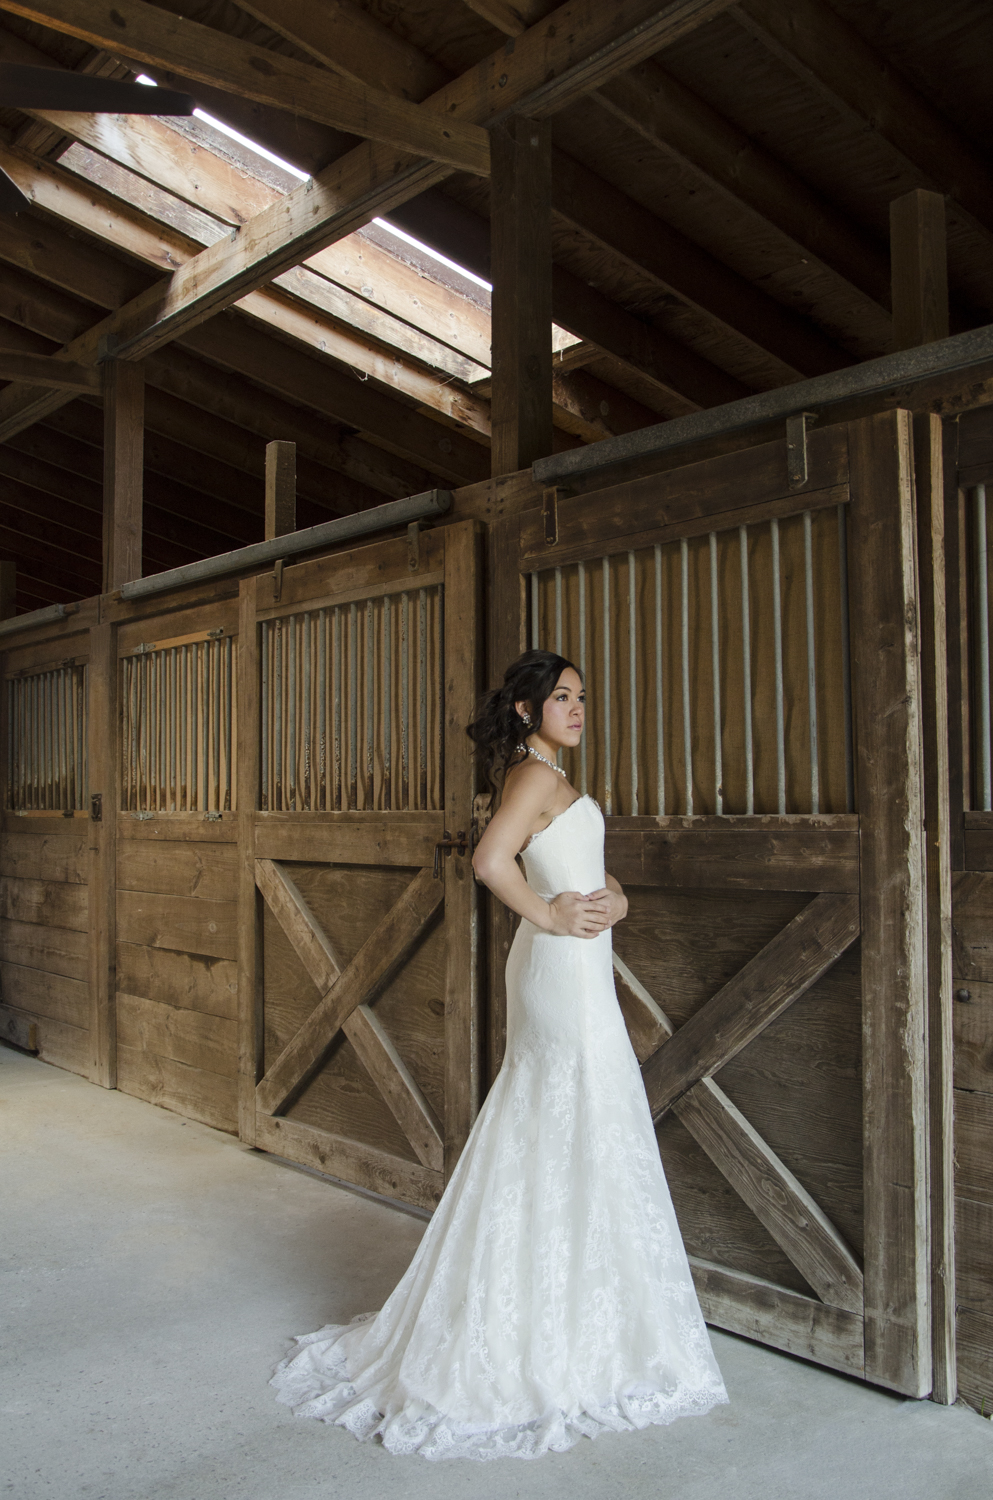 """Model: Kayley Jacobs  Dress: """"Gabrielle"""" by Anais Anette Dress from: Ivory and Beau Location: Red Gate - Savannah, GA"""